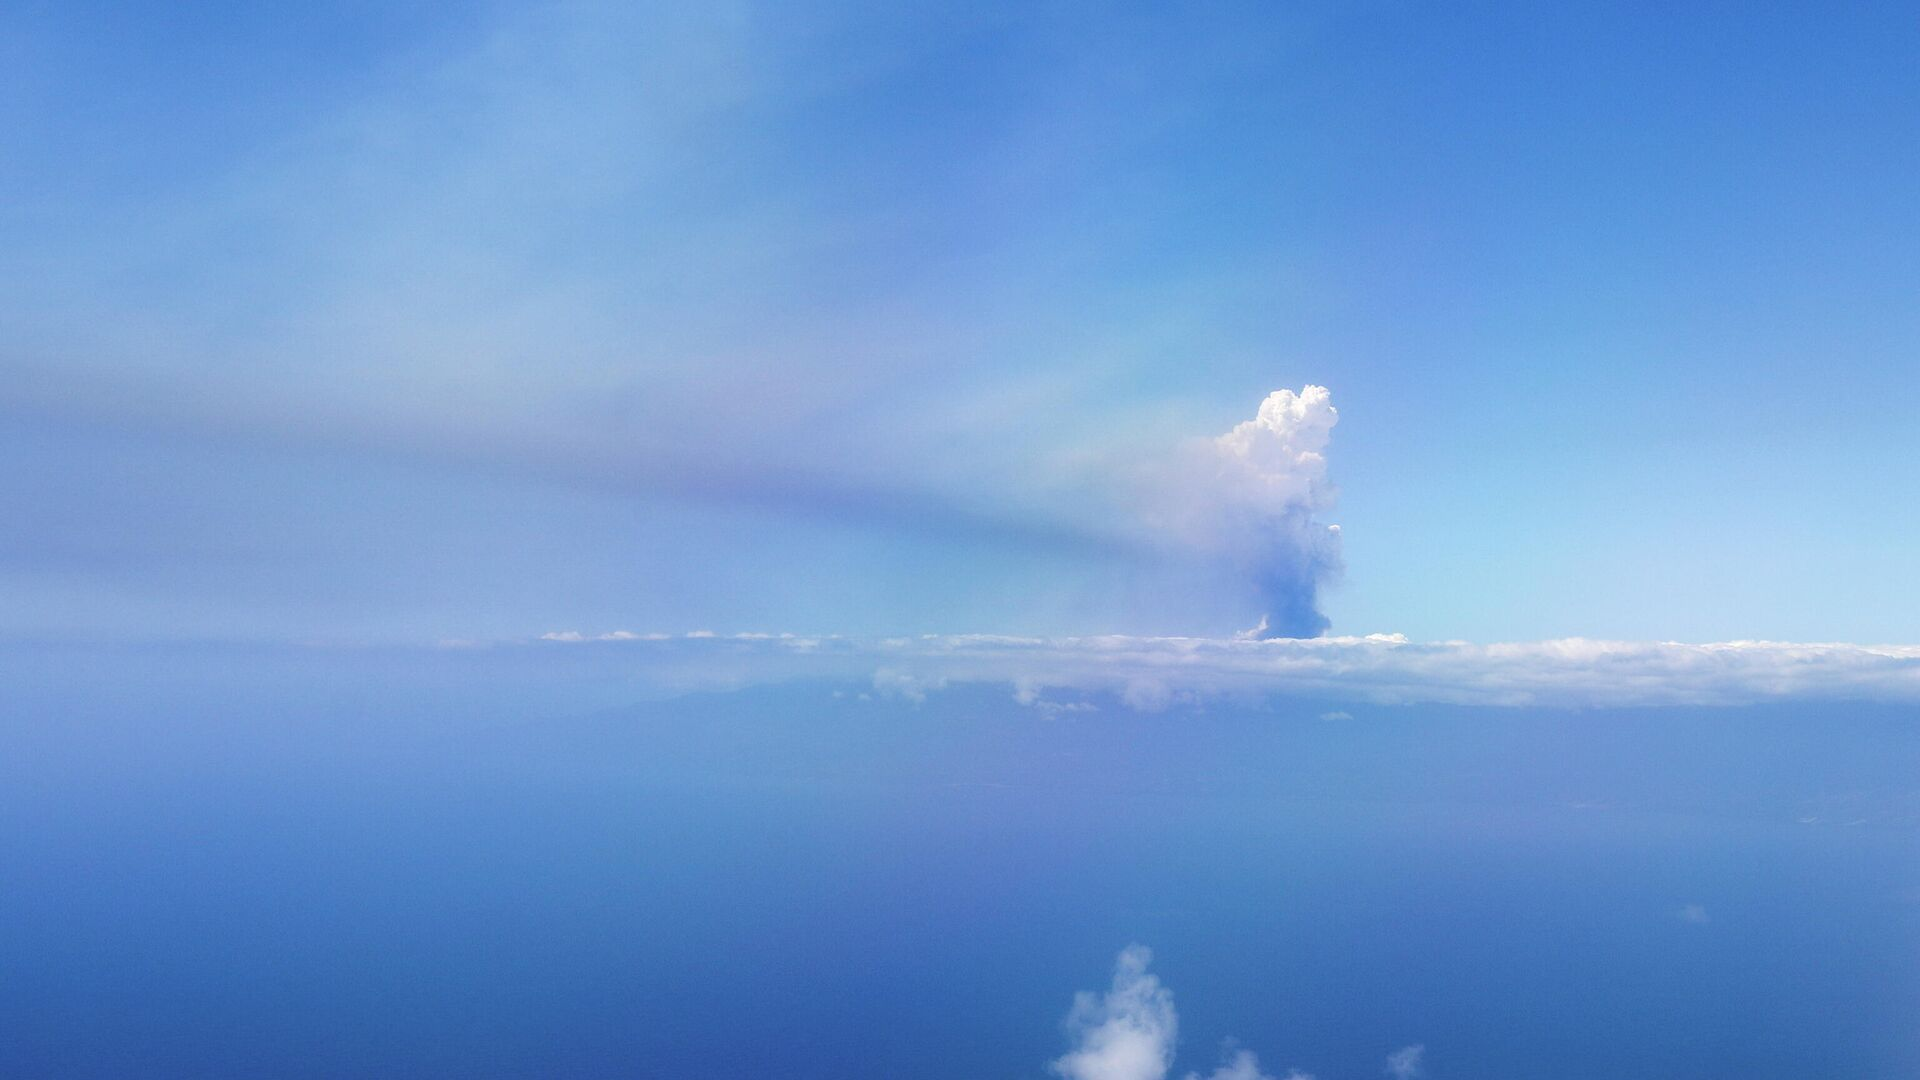 A cloud of smoke from an erupting volcano in the Cumbre Vieja national park, is seen from an aircraft, on the Canary Island of La Palma, Spain September 23, 2021 - Sputnik International, 1920, 25.09.2021